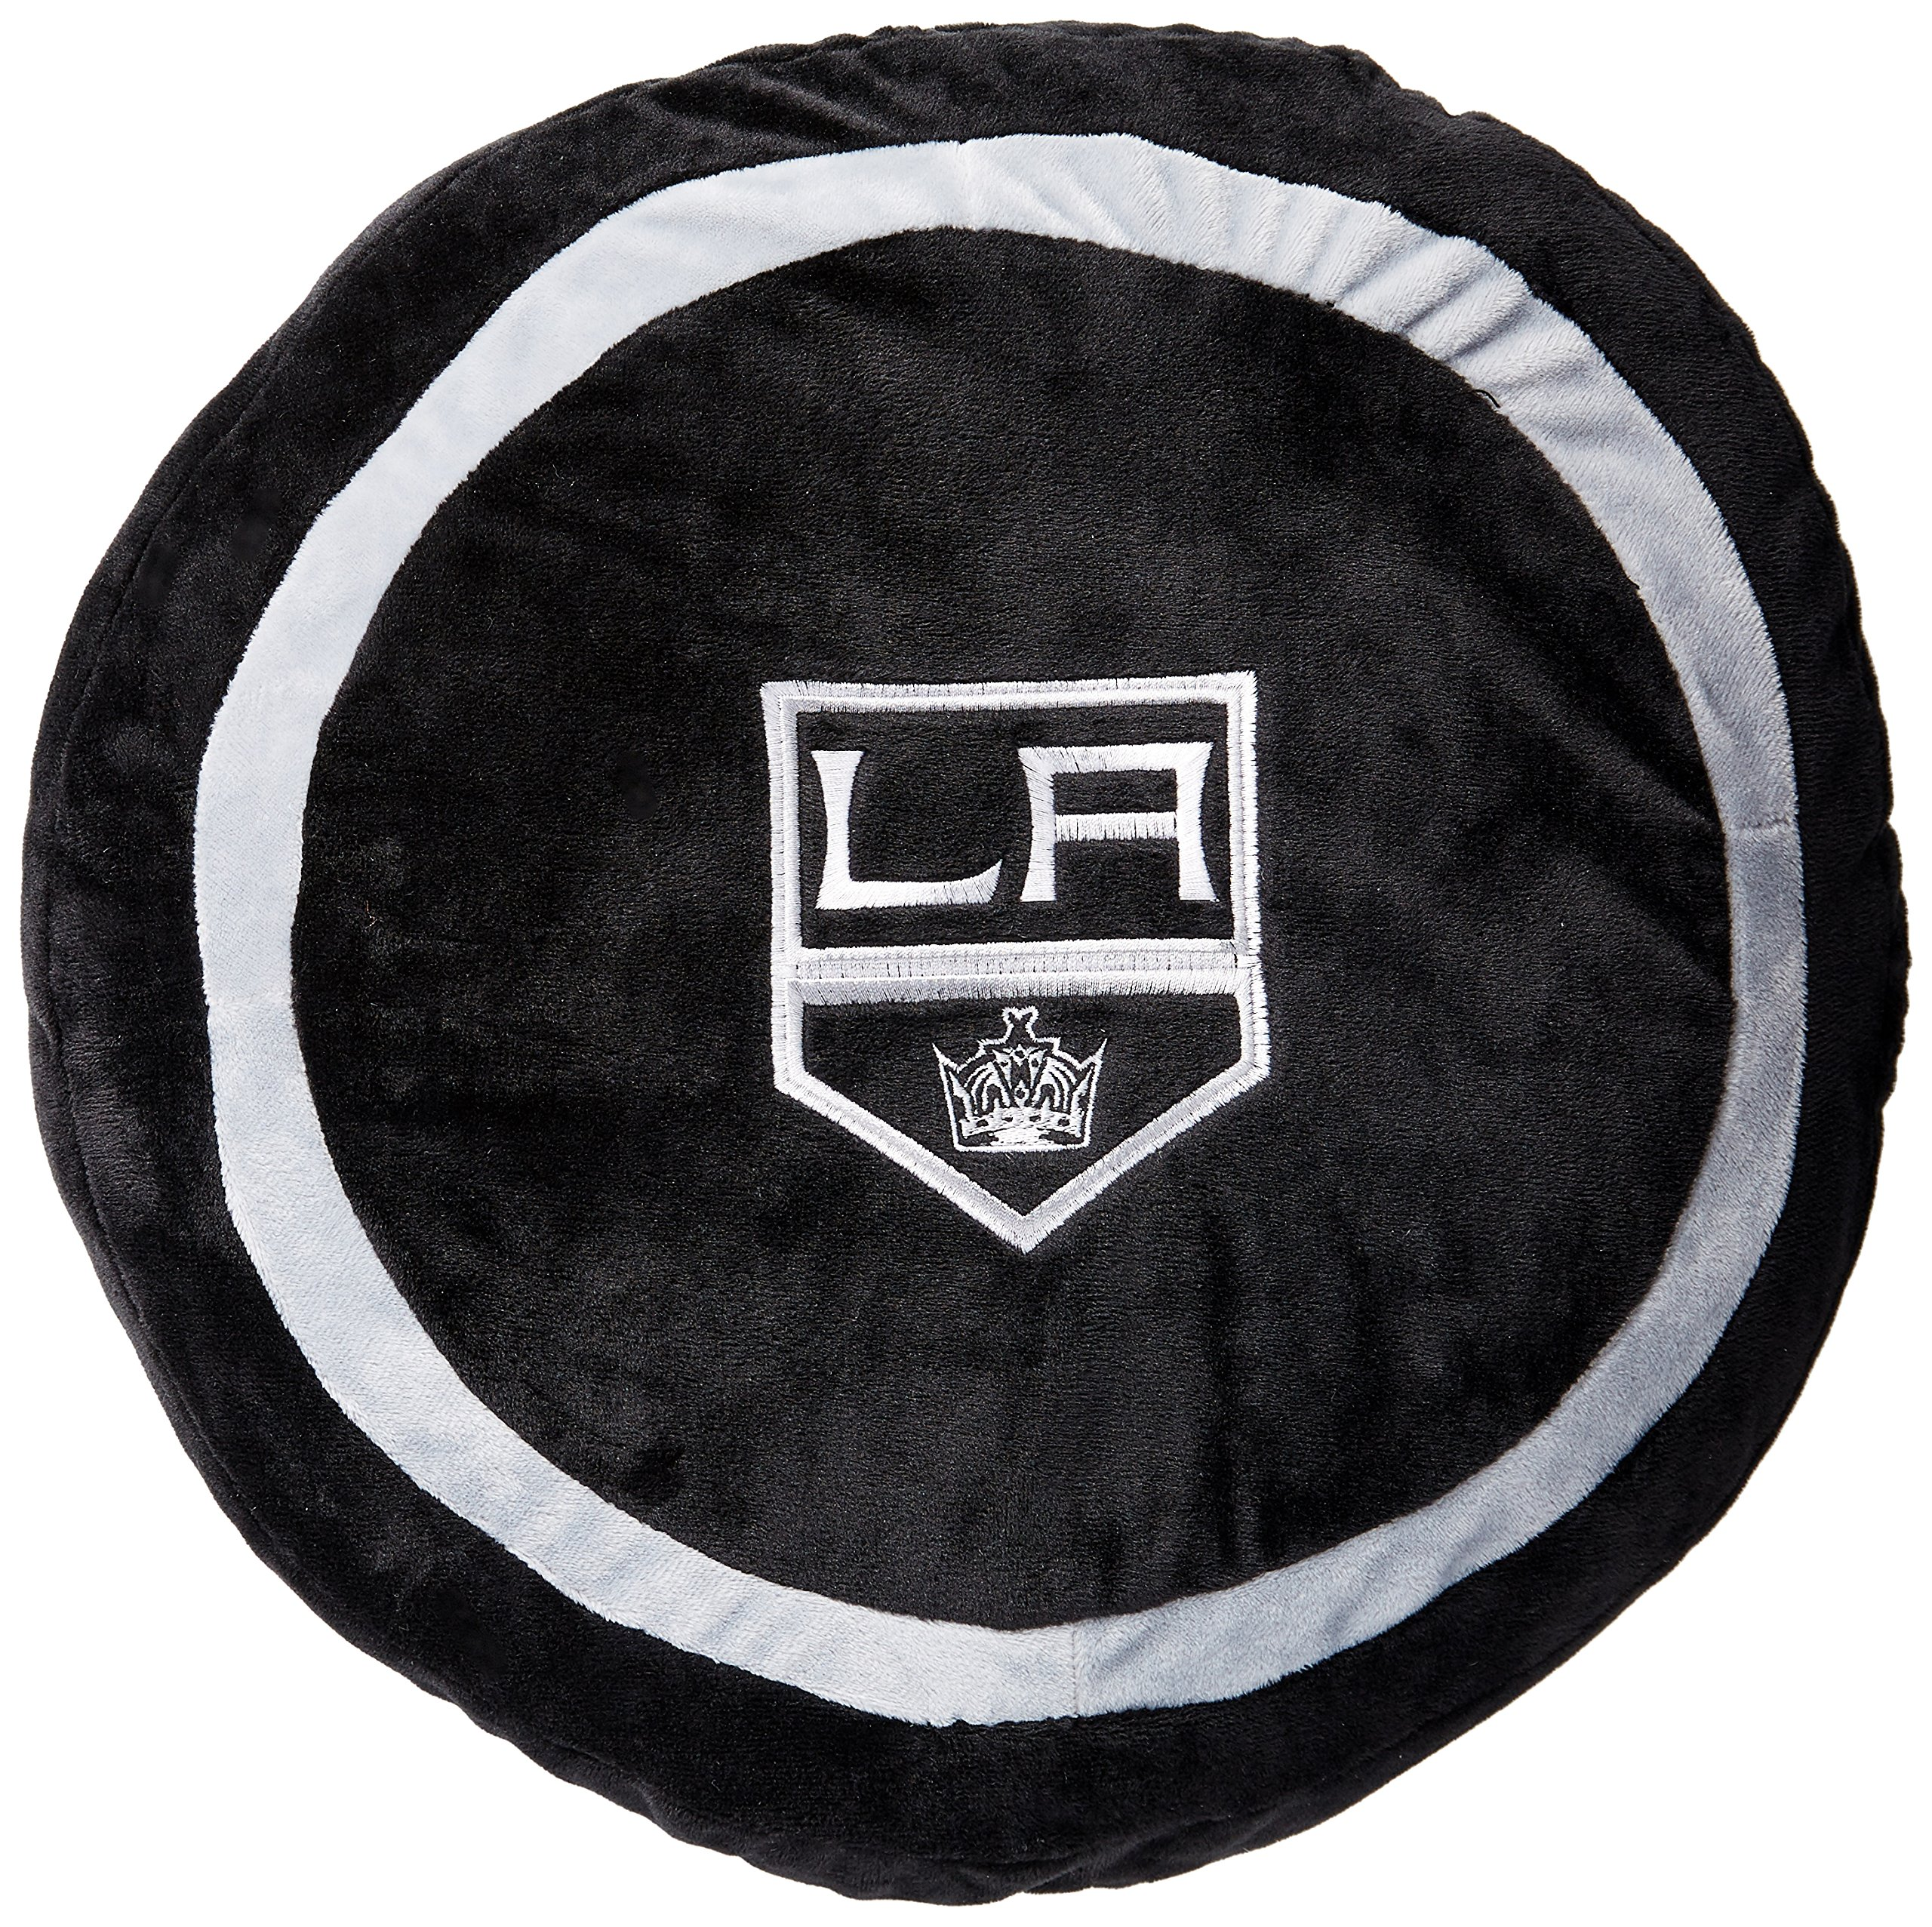 Officially Licensed NHL Los Angeles Kings 3D Sports Pillow, 19'', Multi Color by The Northwest Company